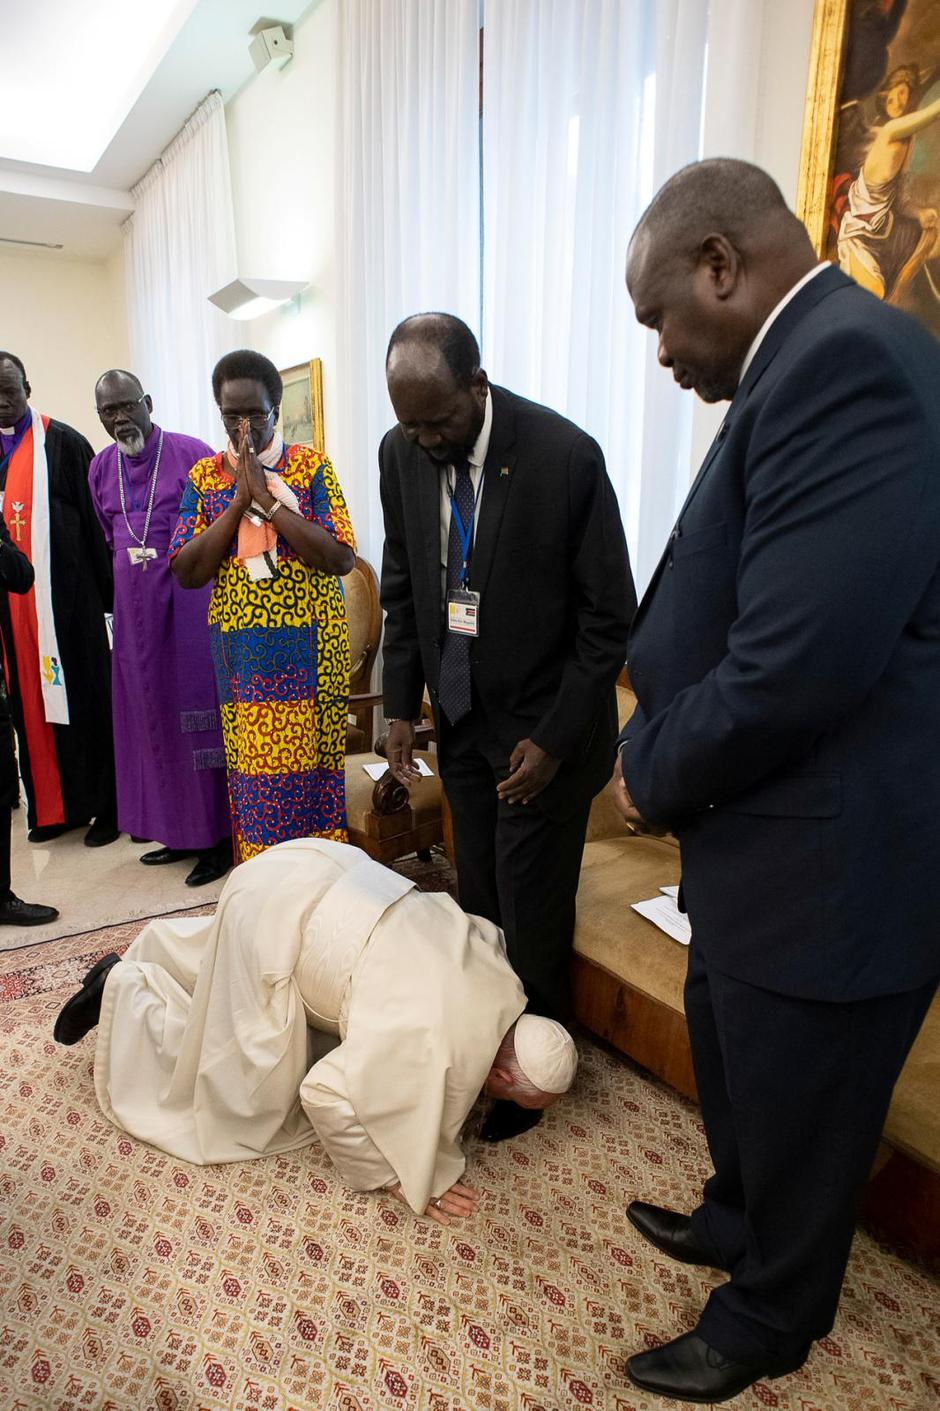 Pope Francis kneels to kiss feet of the President of South Sudan Salva Kiir at the end of a two day Spiritual retreat with South Sudan leaders at the Vatican | Autor: VATICAN MEDIA/REUTERS/PIXSELL/REUTERS/PIXSELL